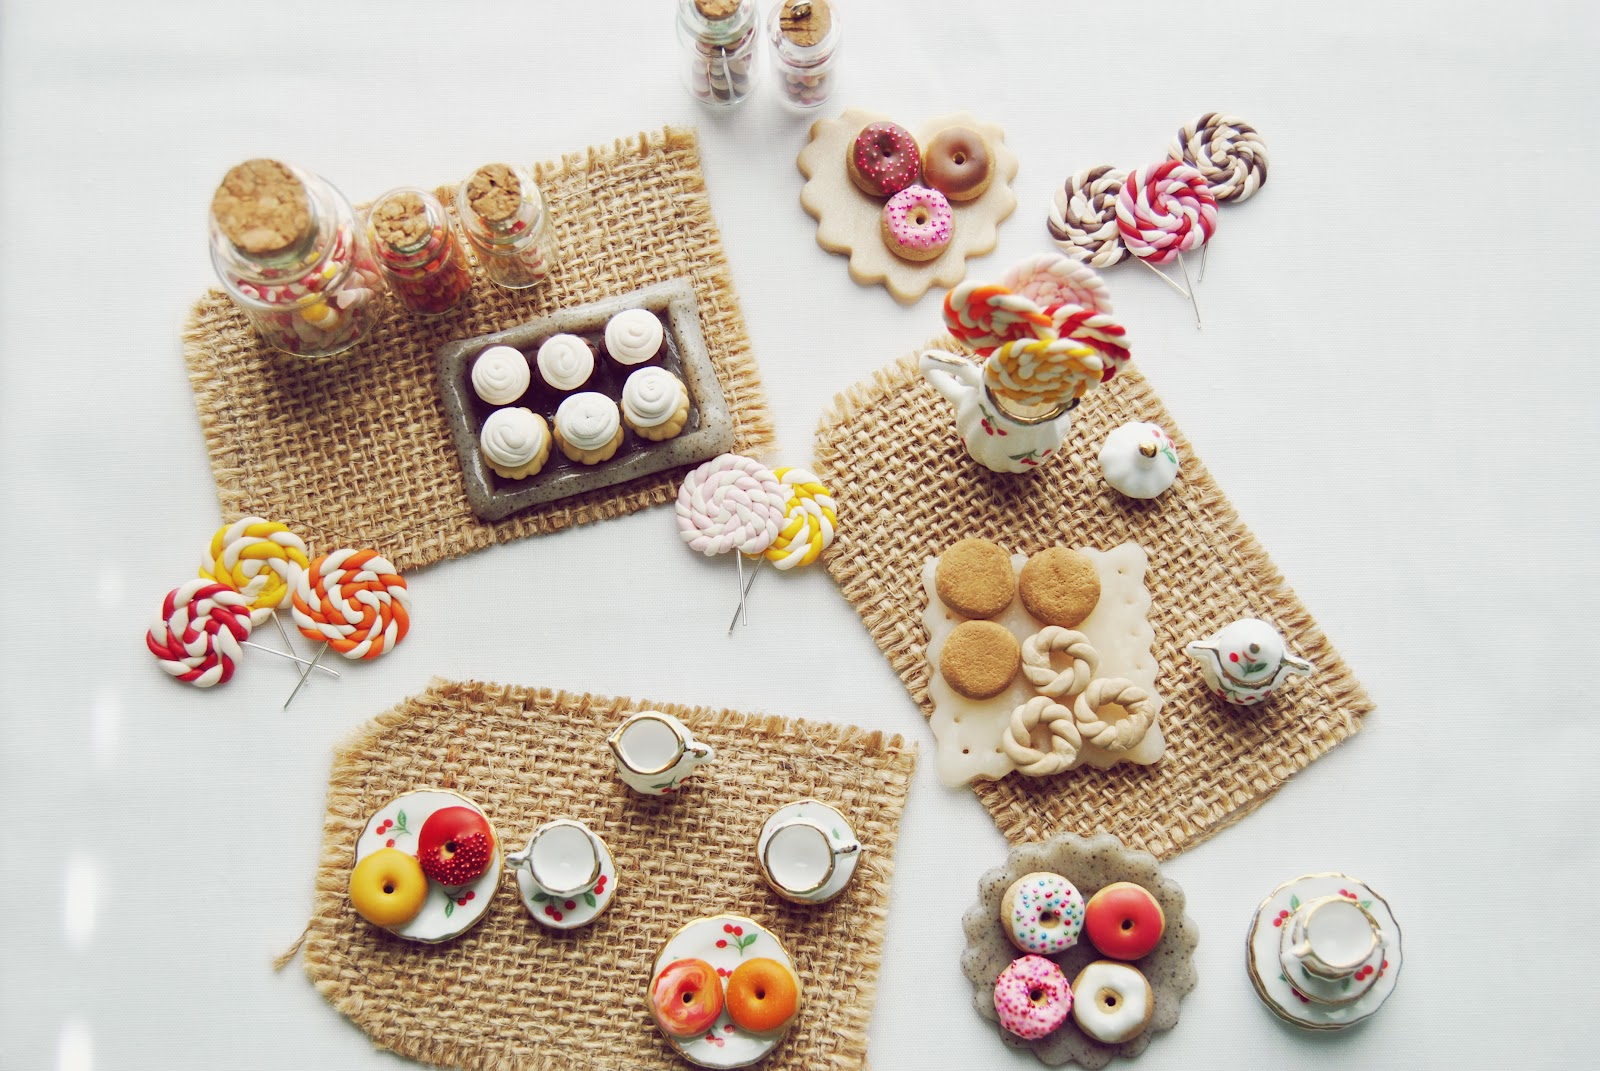 Pasteltinted Polymer Clay Miniature Sweets Candy Desserts